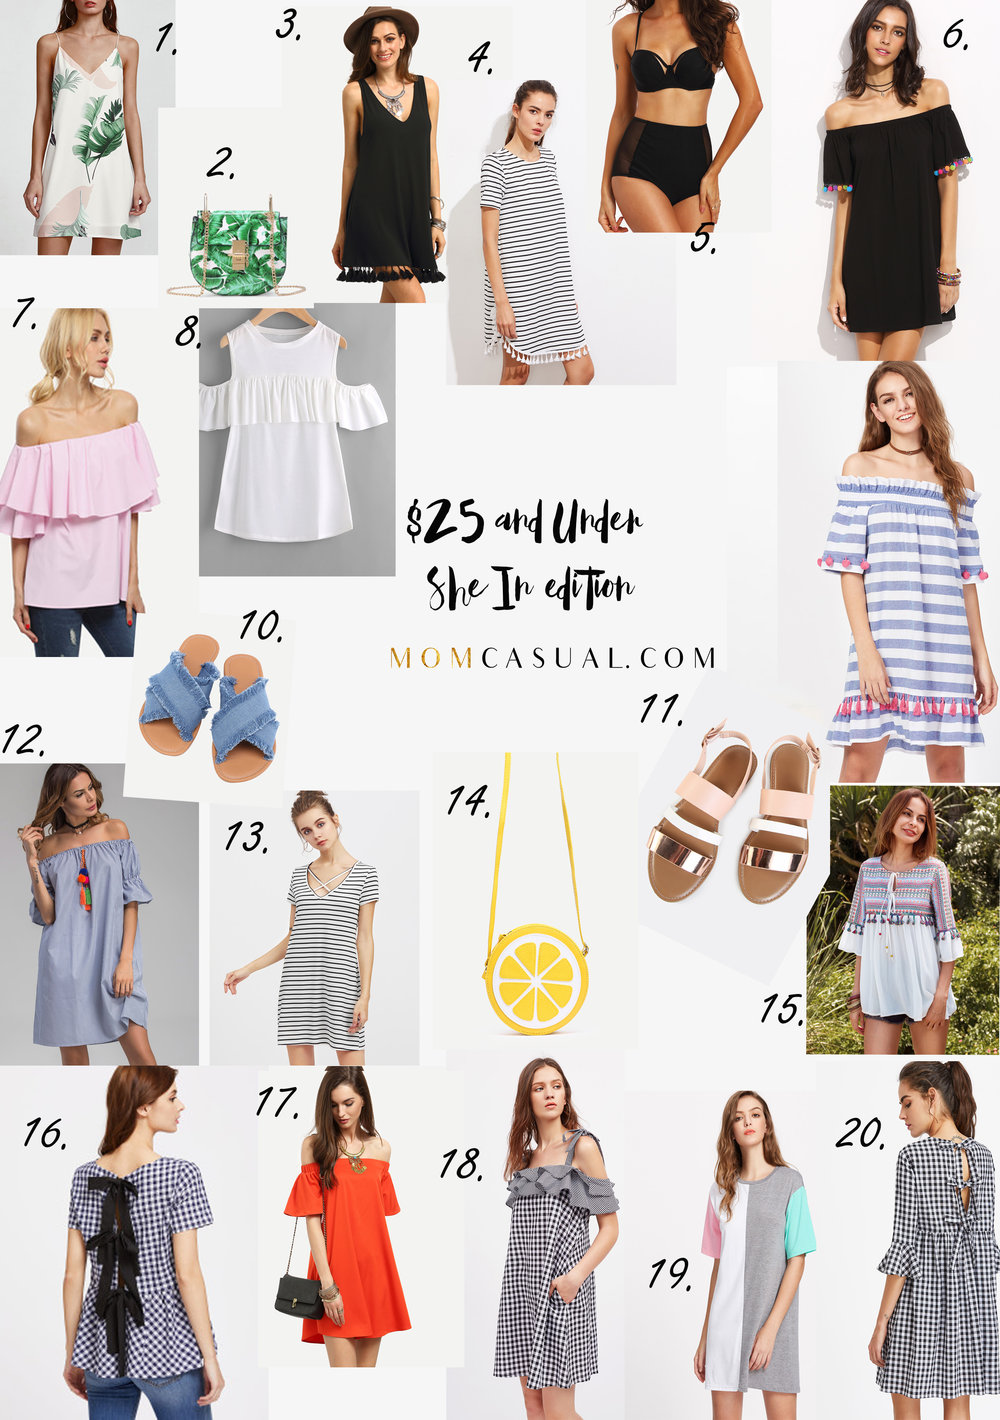 $25 and Under SheIn Edition